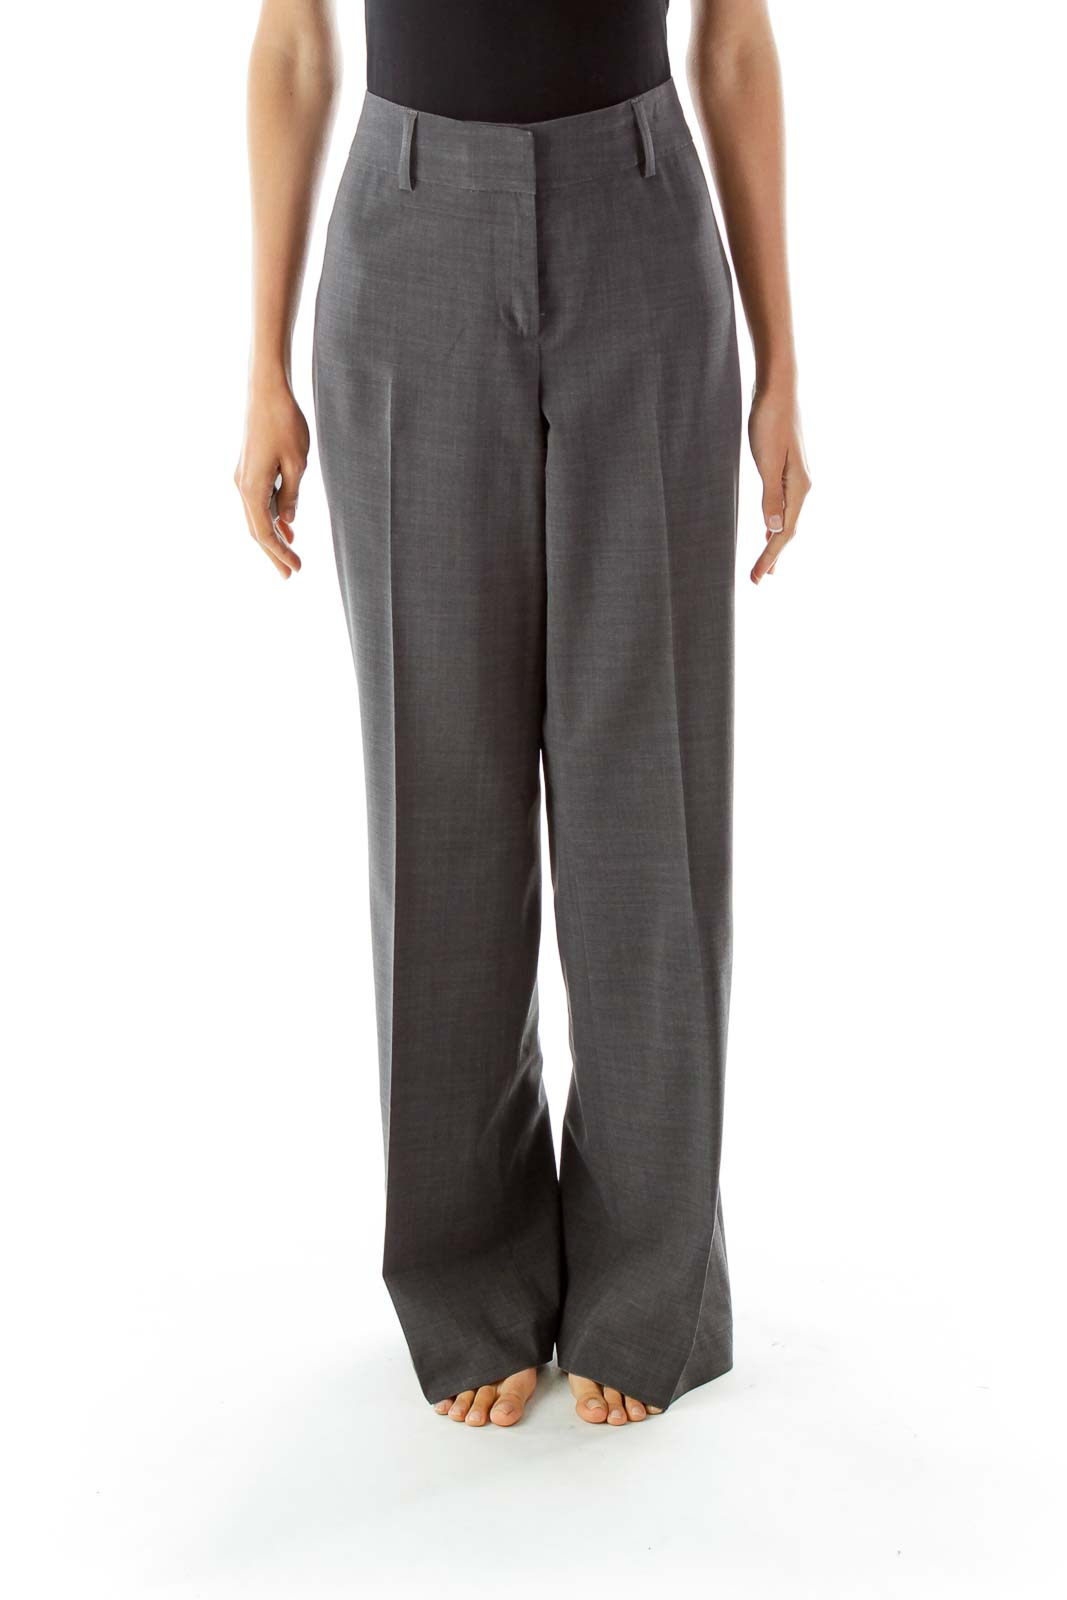 Gray Wide Leg Pants